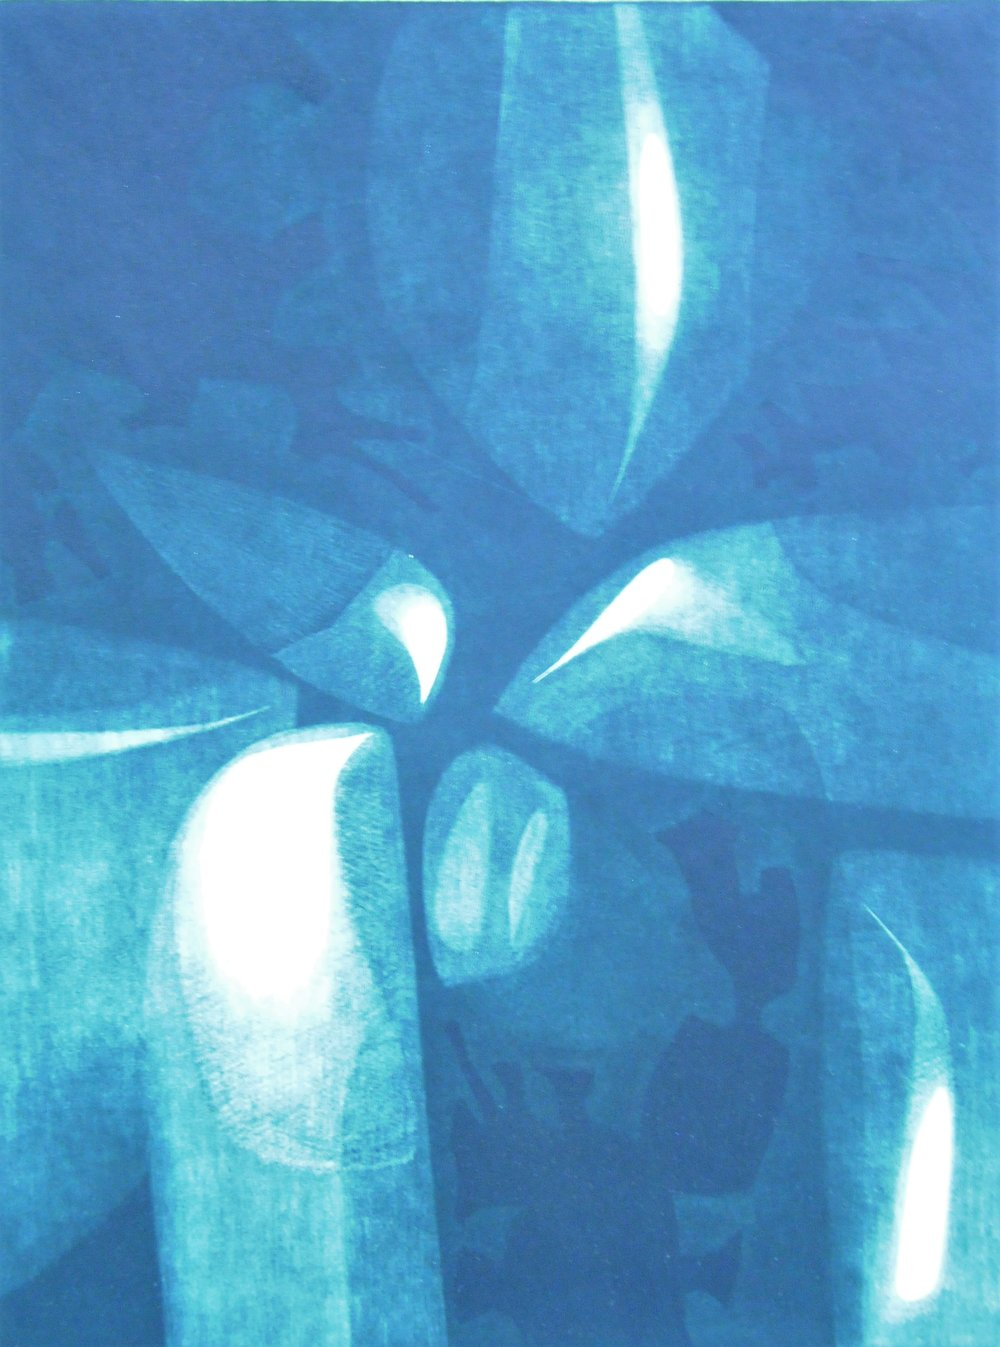 Benign and Hostile Forms,  1962/63, Judith Foster, mezzotint print, edition 30/50, 32.4 x 24.8 cm, 2006.06.01, gift of Anna Vakan